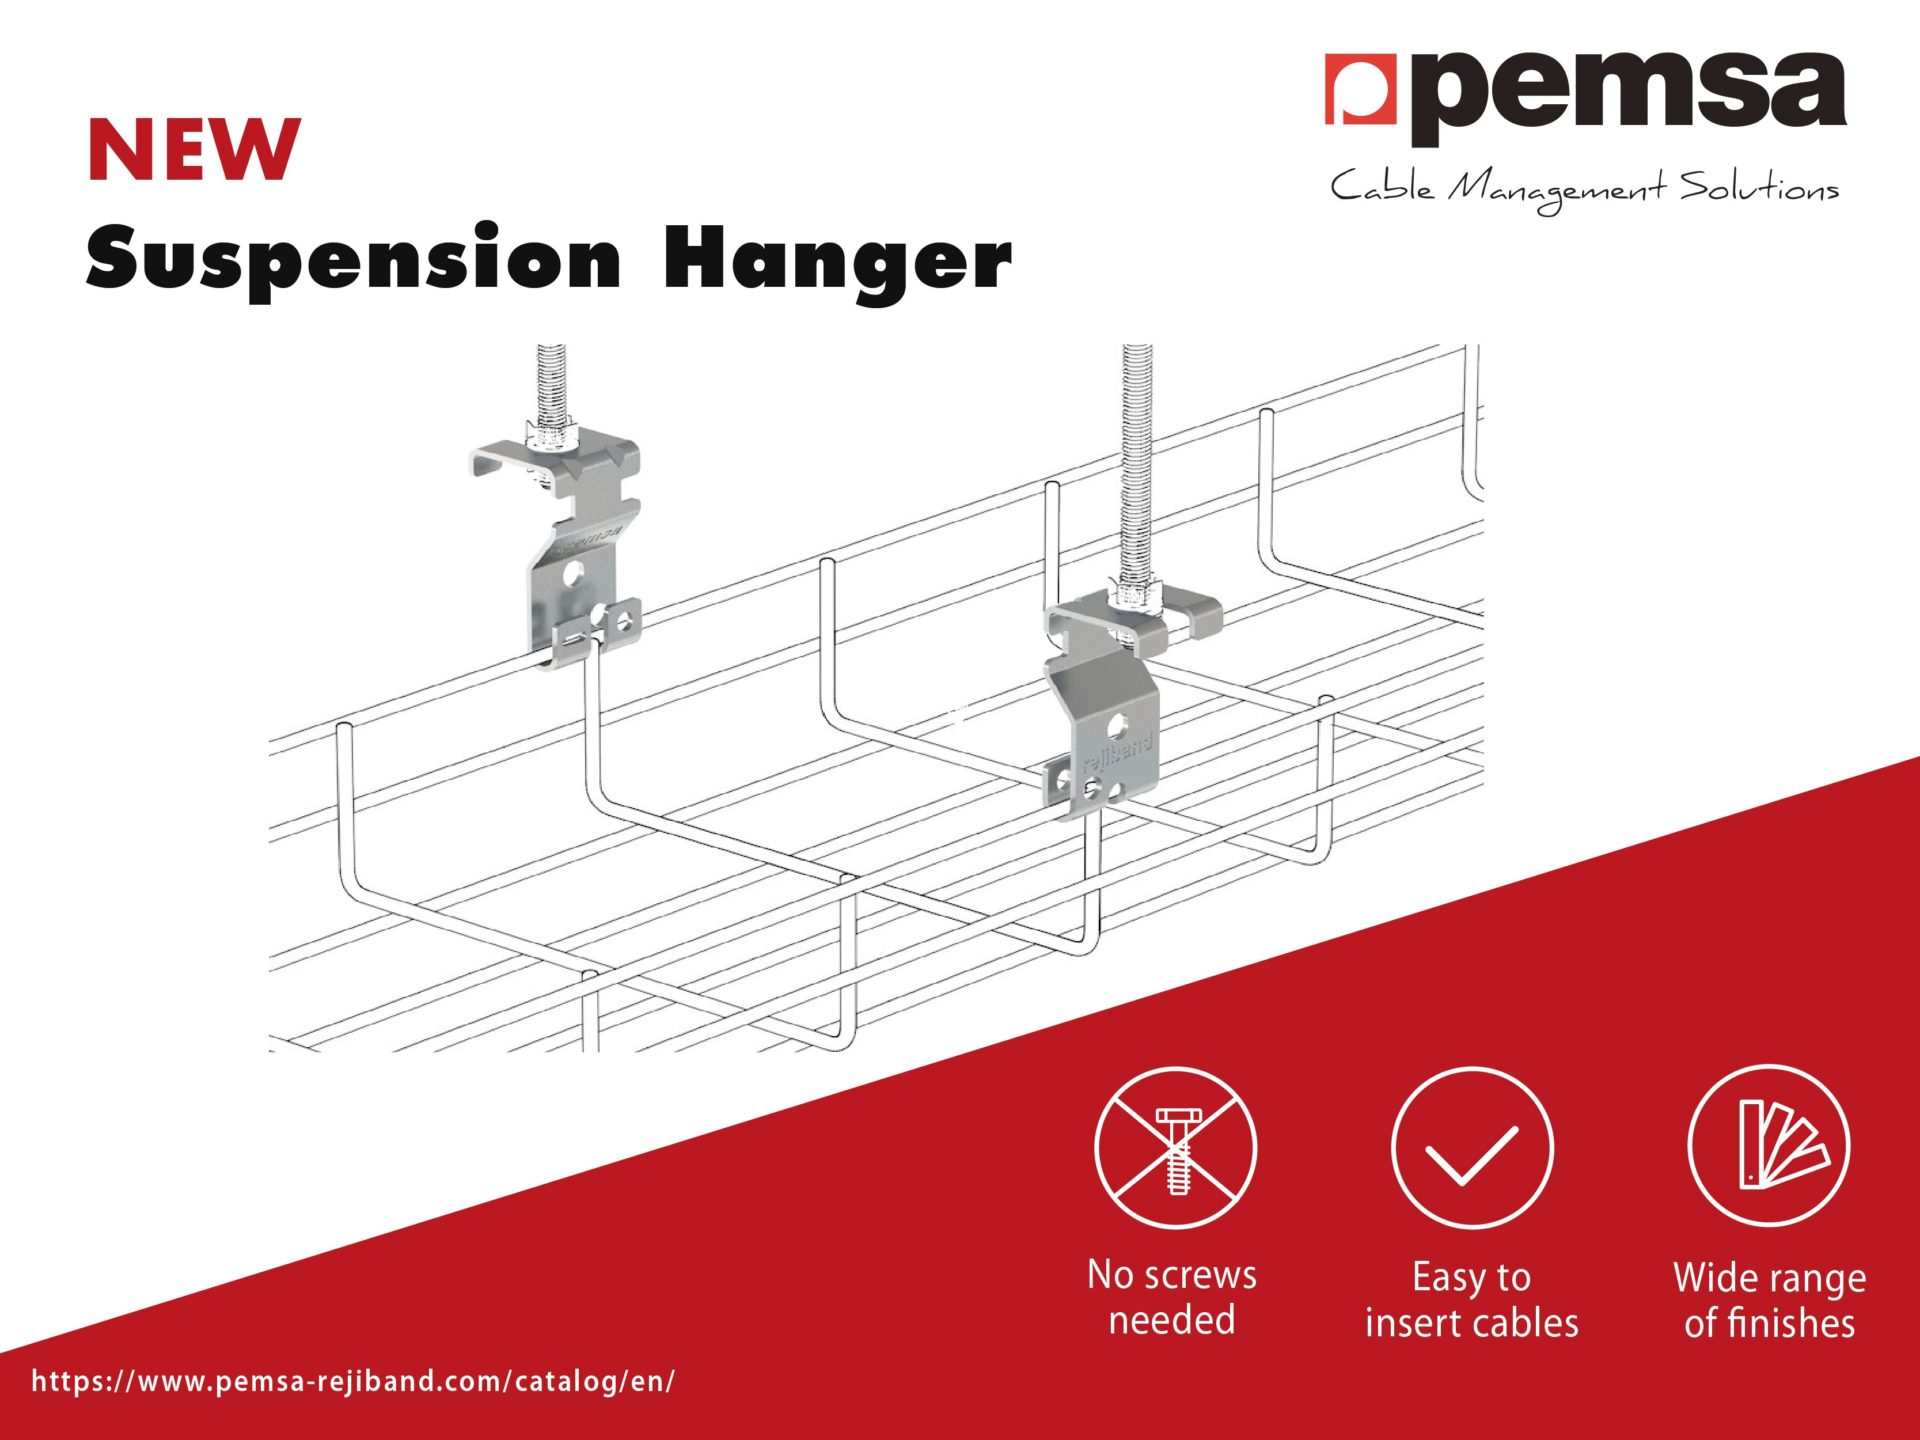 Pemsa launches the new Suspension Hanger for the Rejiband tray systems.